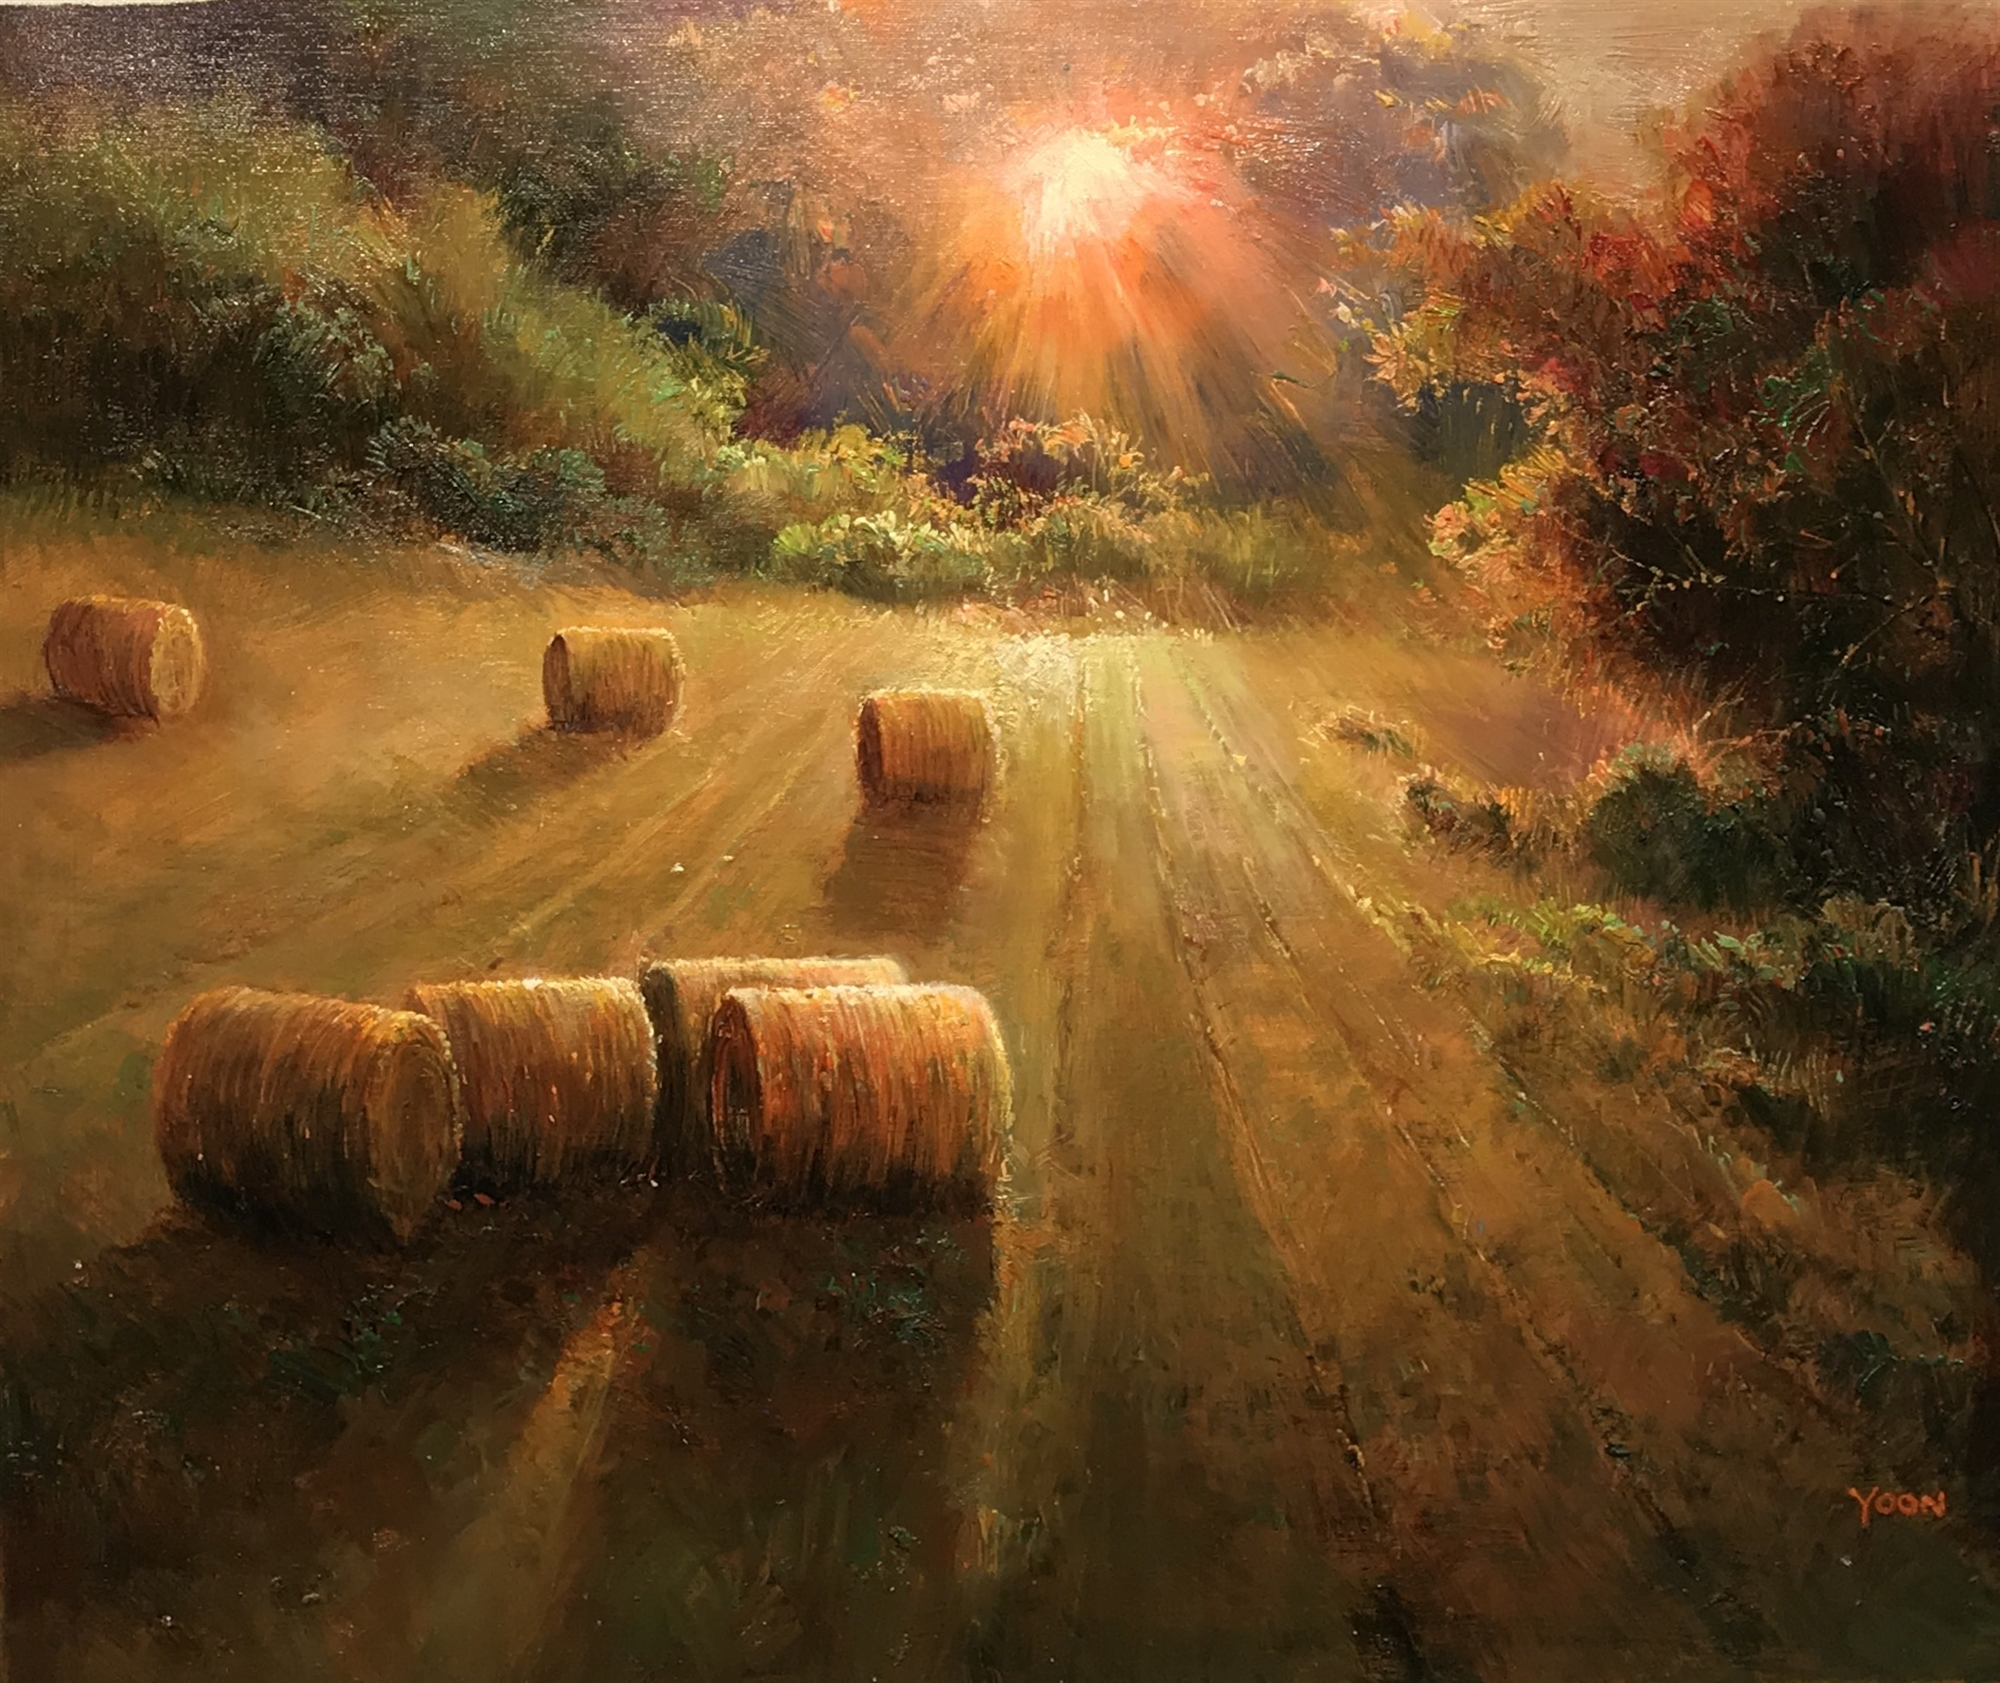 HAY ROLLS IN THE FIELD by MAX YOON